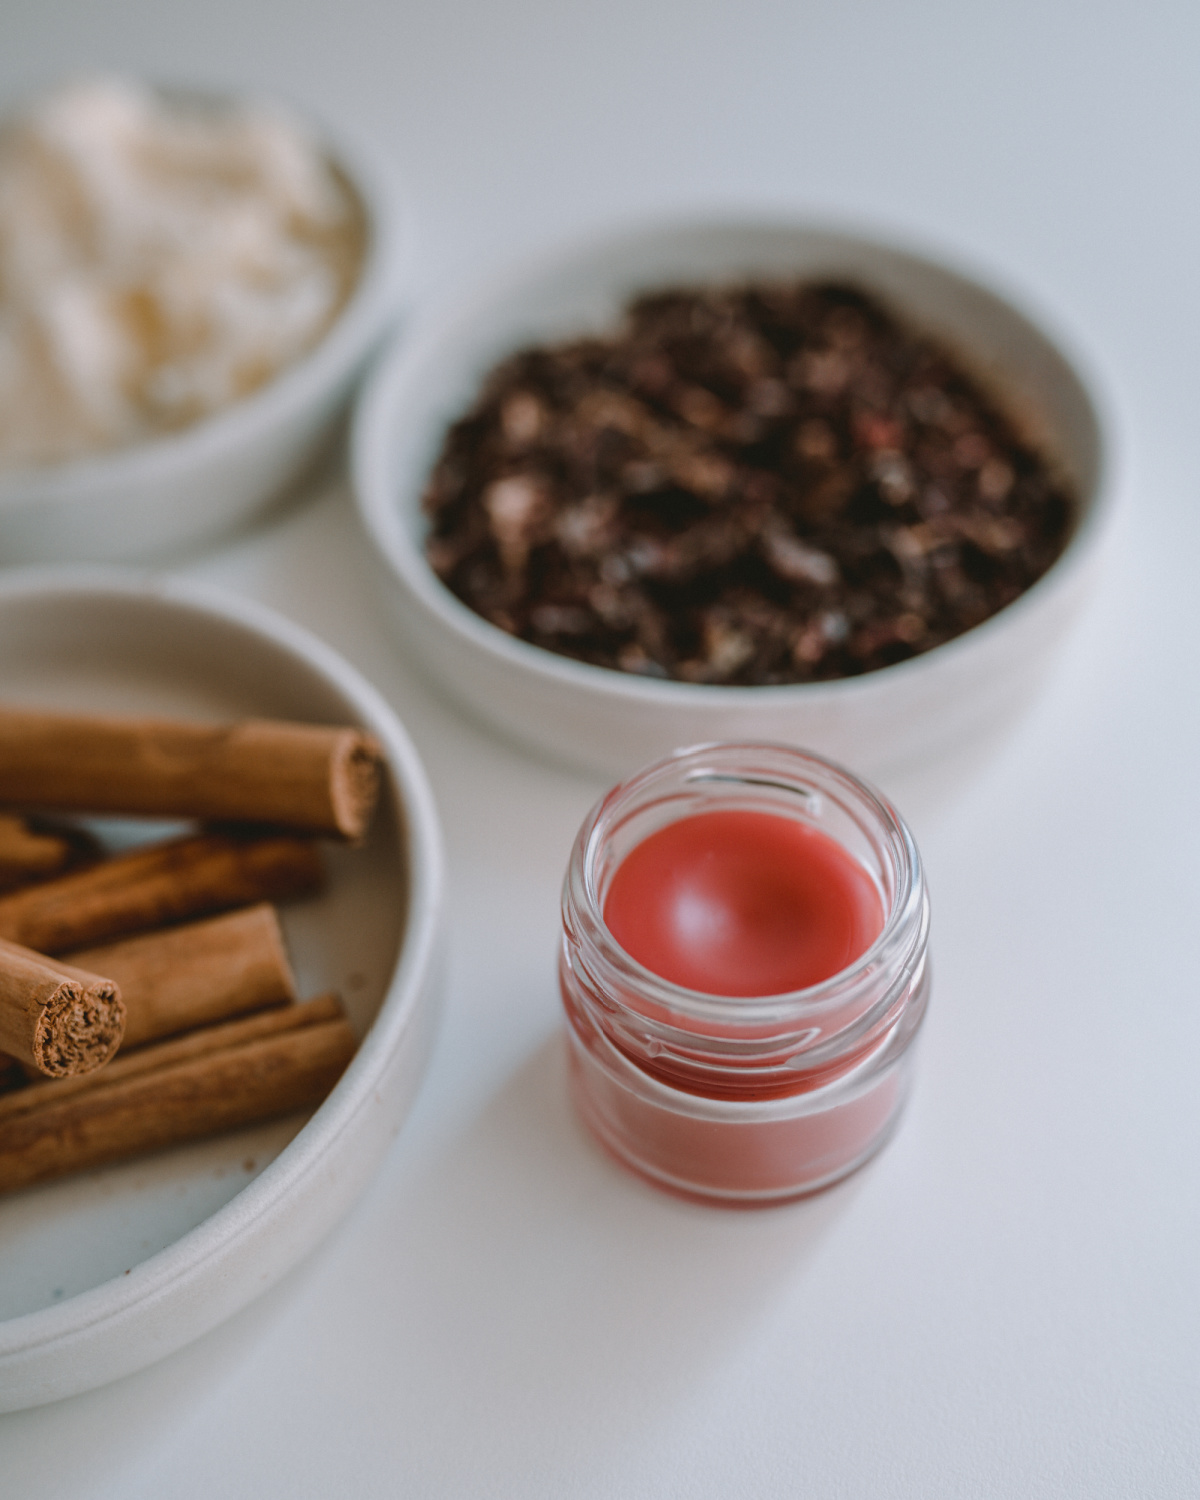 lip balm on a table with ingredients in the background